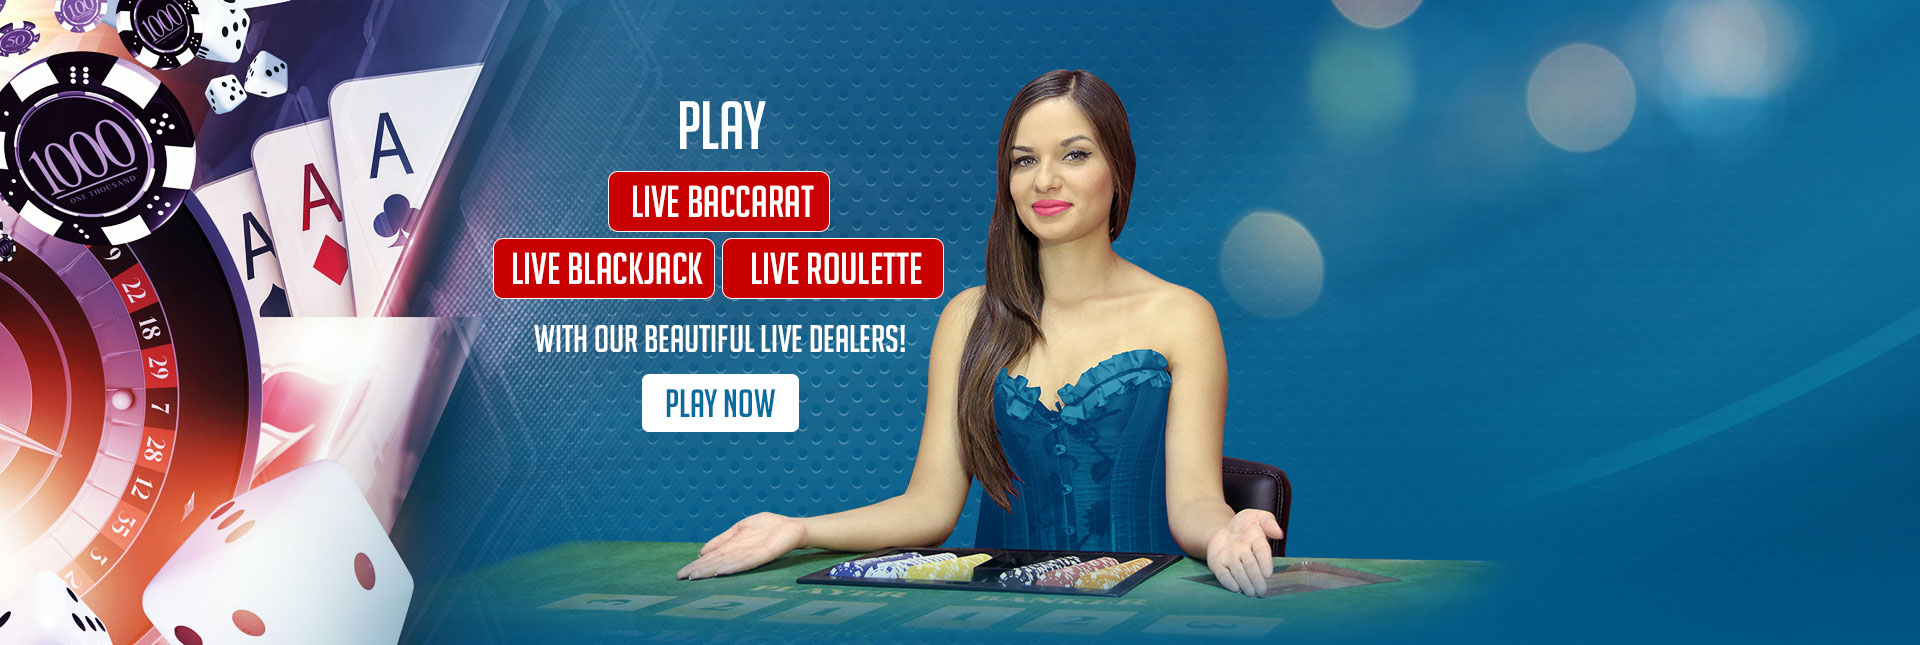 Play with our Beautiful Live Dealers